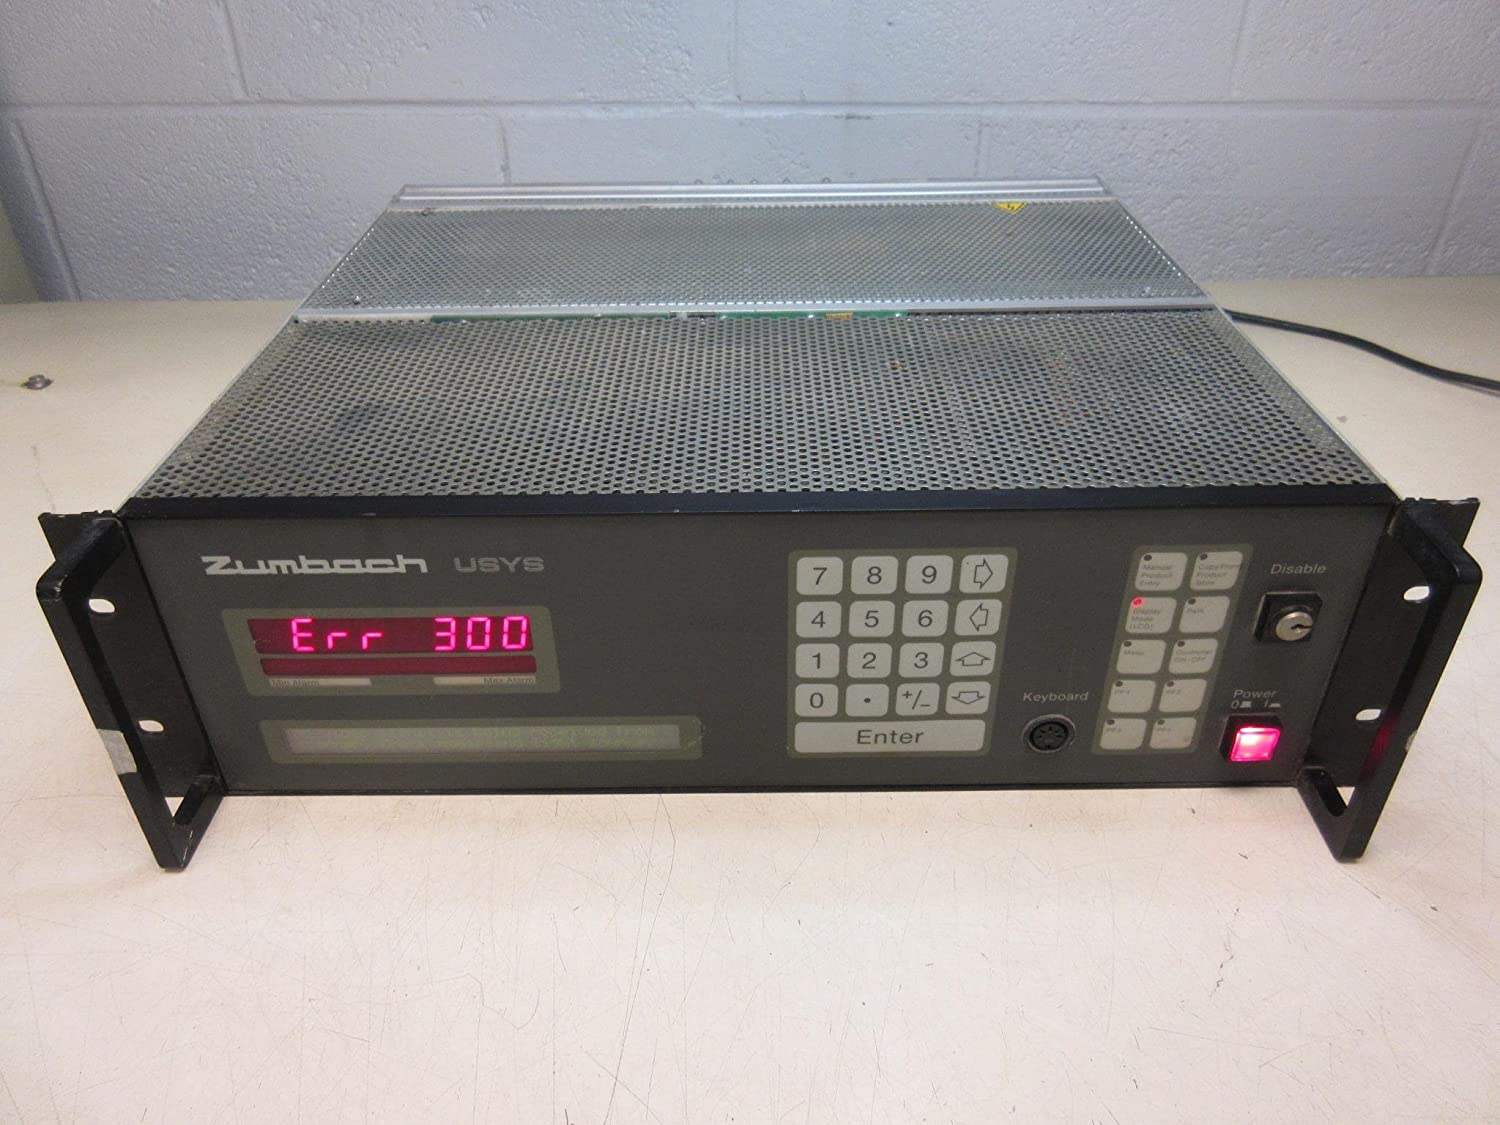 Zumbach USYS 100 Measuring Equipment Control for ODAC 35XYU